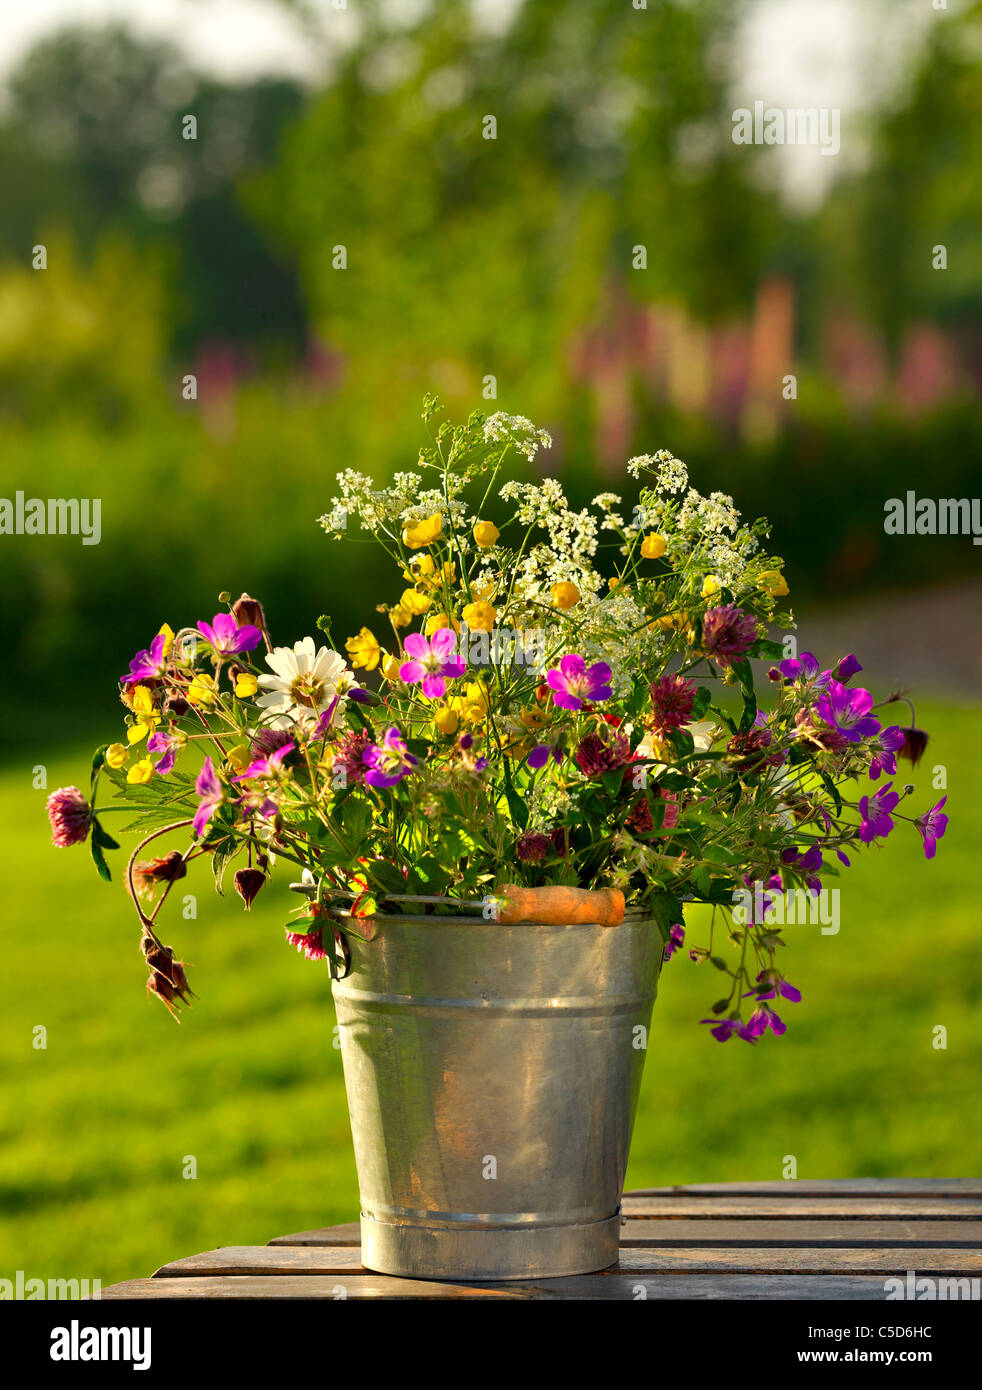 Close Up Of Beautiful Midsummer Flowers In Bucket Against Blurred